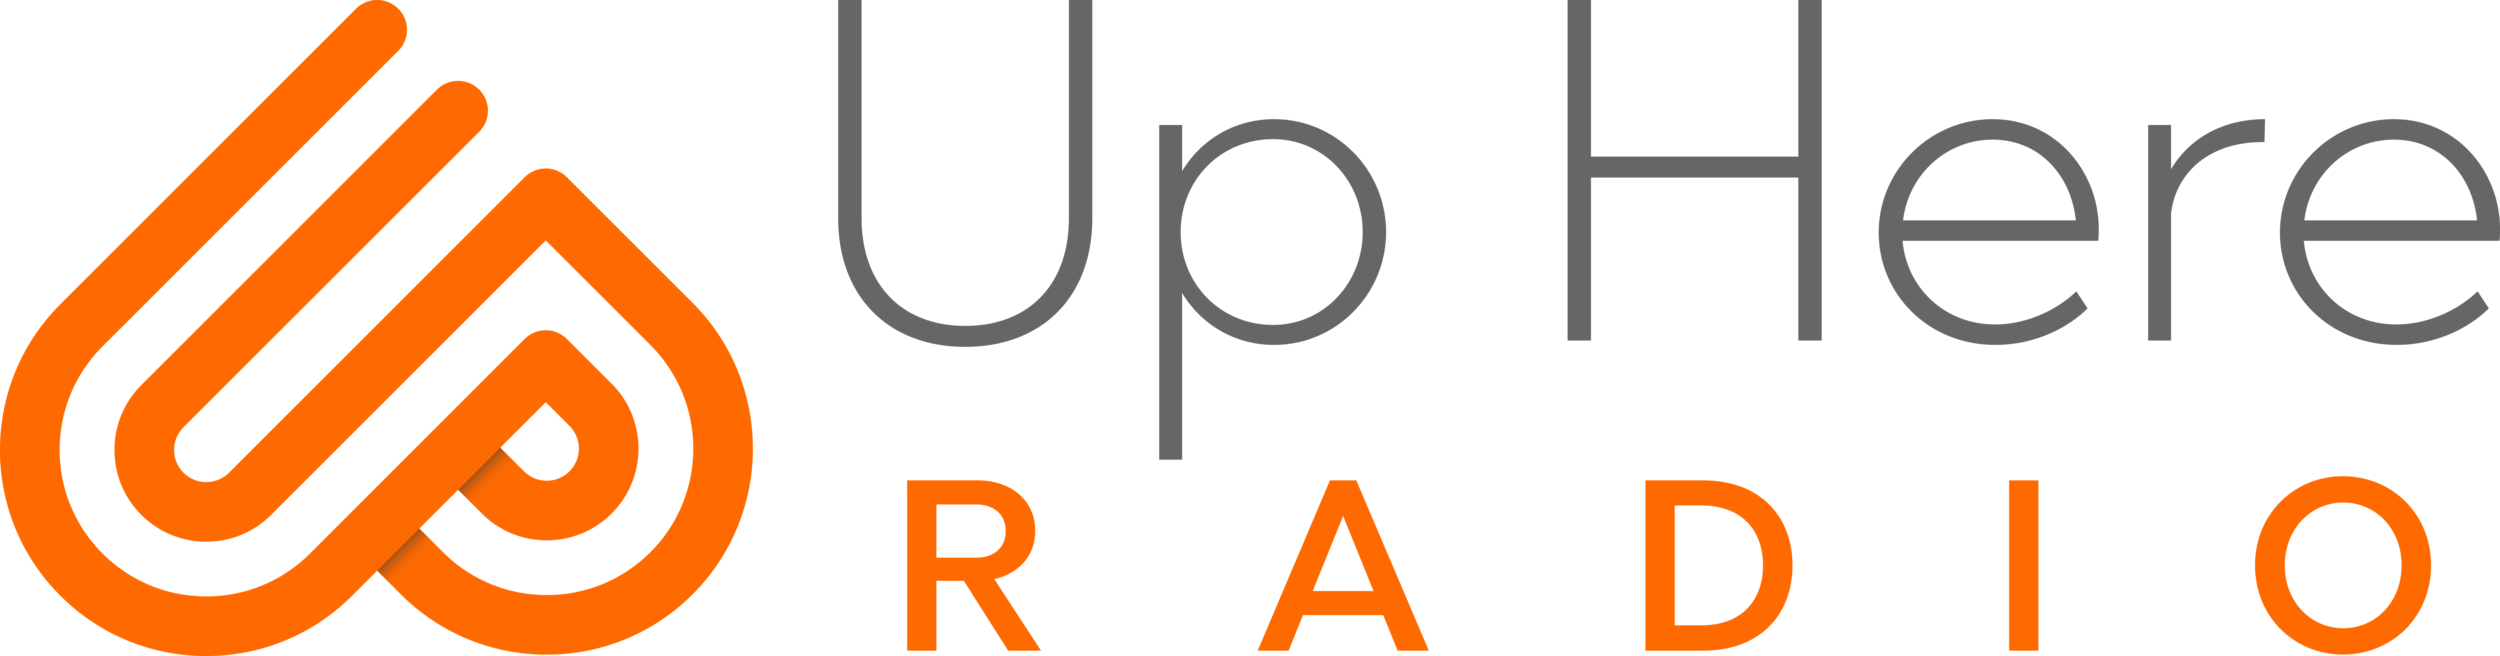 UHR Horizontal Grey and Orange Logo.png